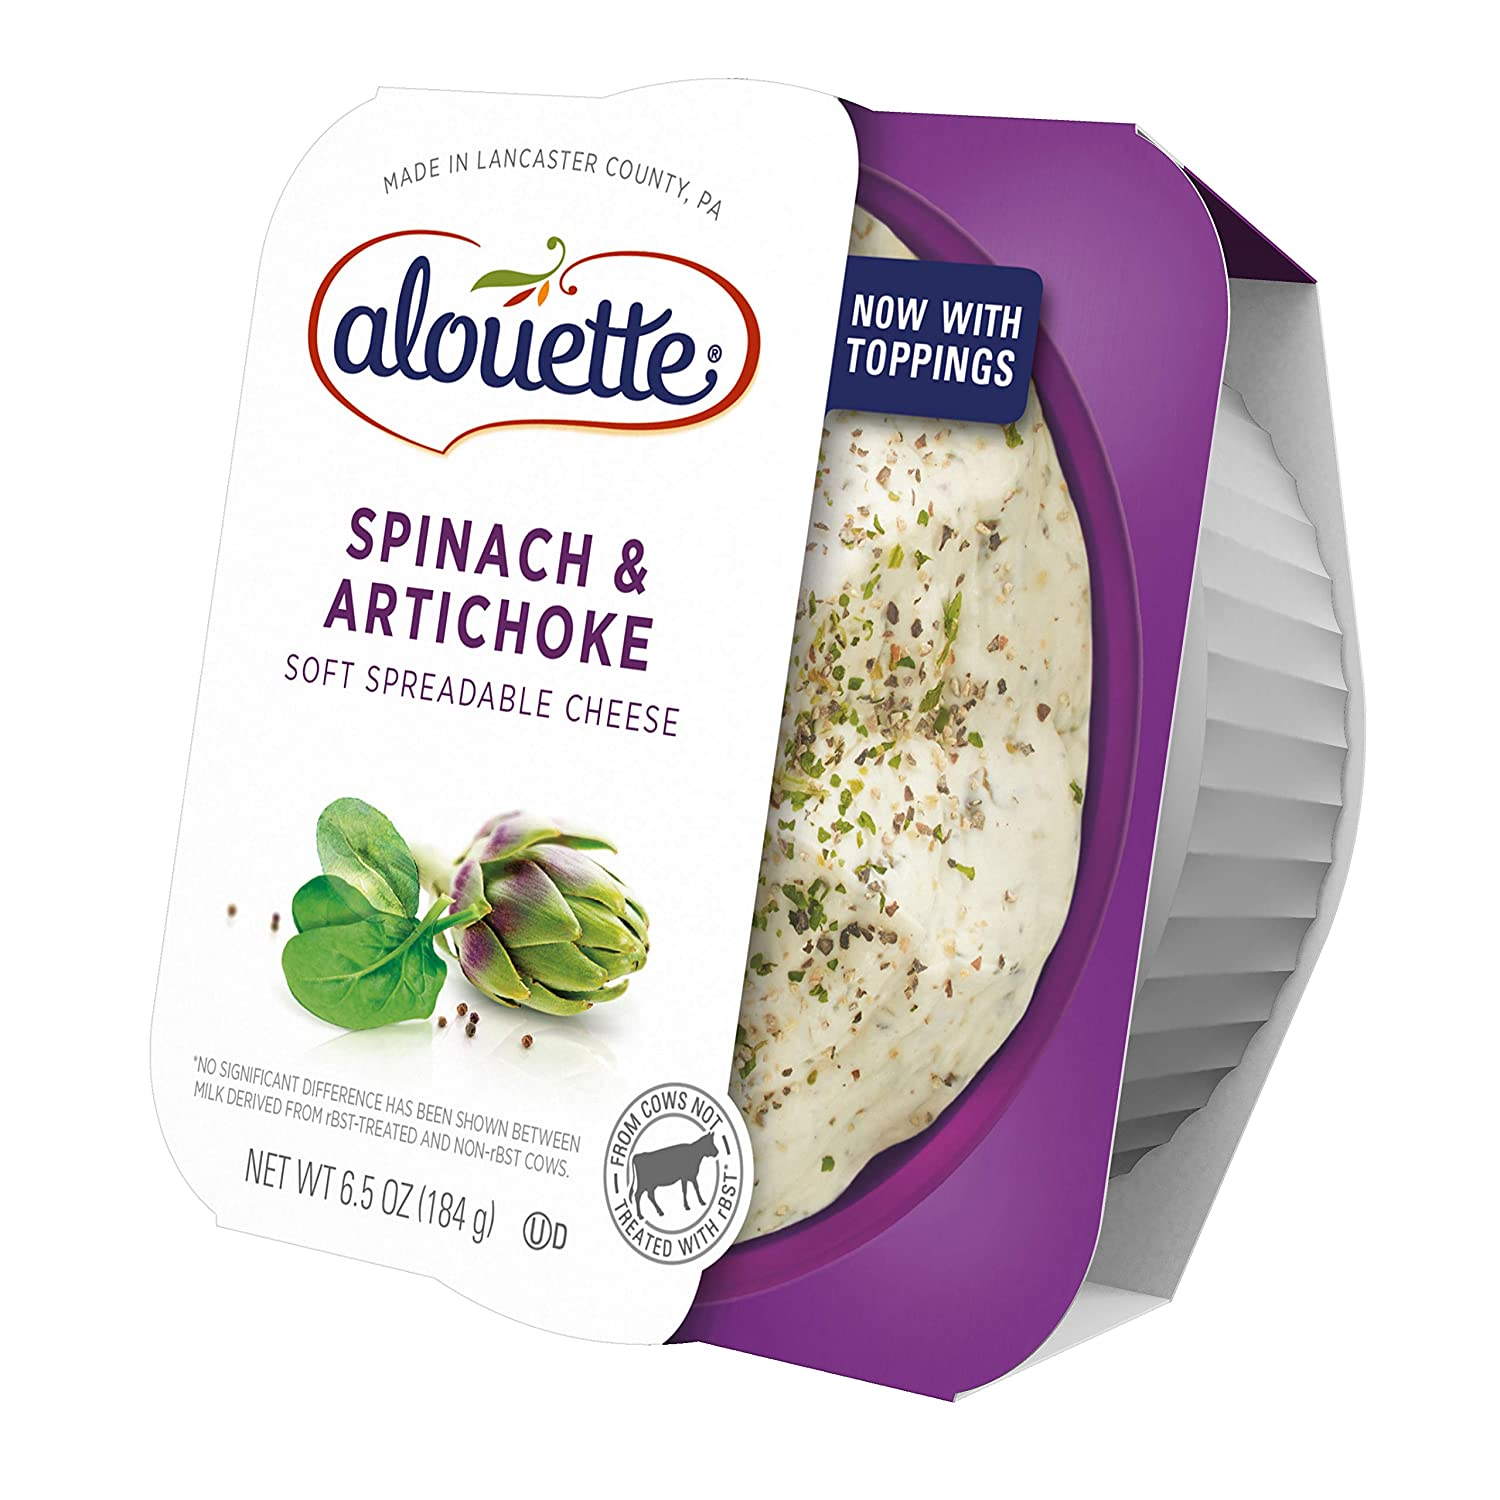 Alouette Spinach Artichoke 6 5 Oz Amazon Com Grocery Gourmet Food